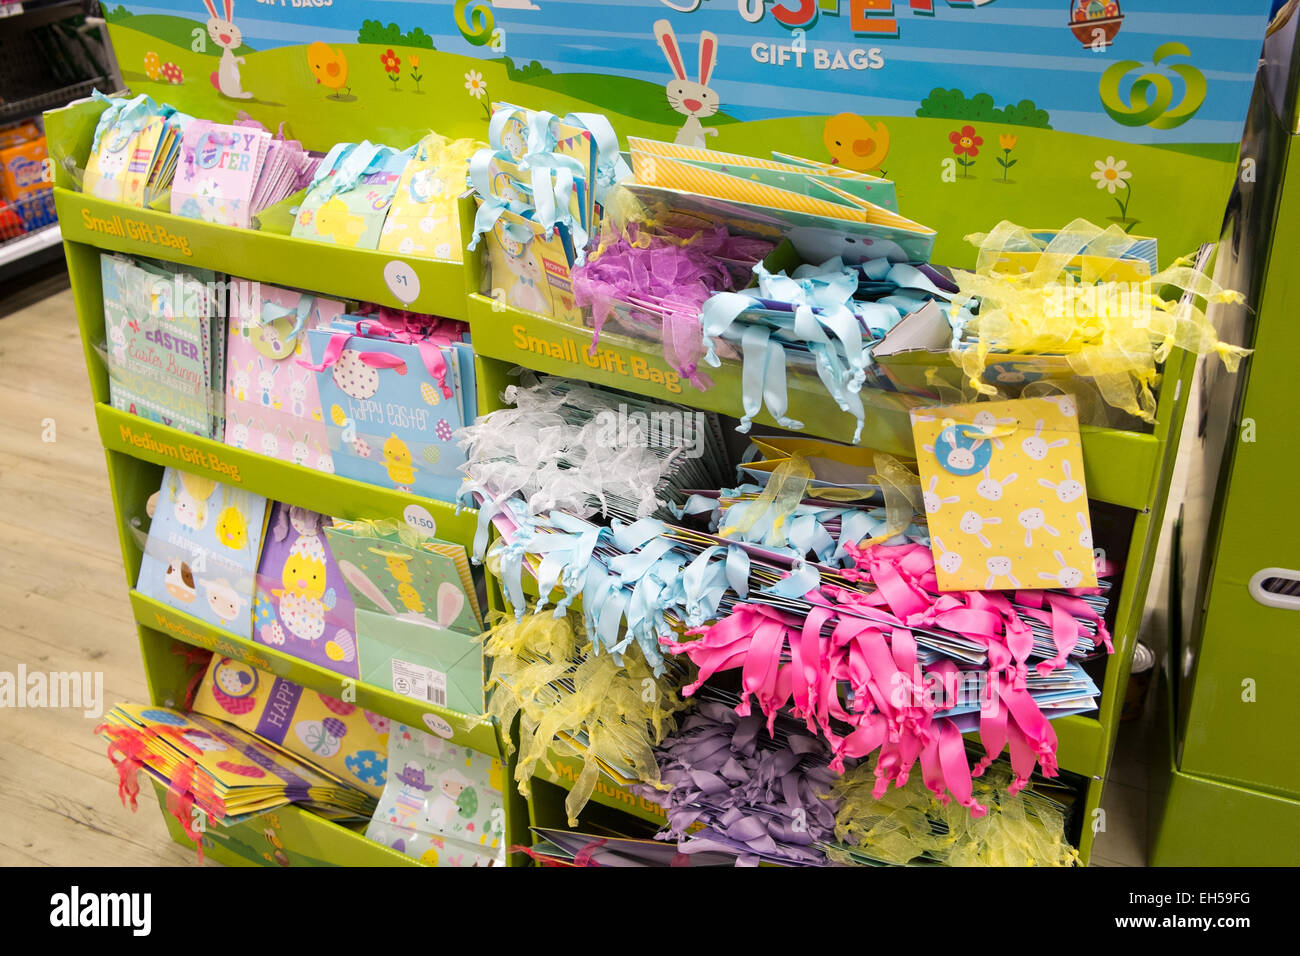 Gift cards stock photos gift cards stock images alamy easter wrapping and gift cards for sale interior of an australian woolworths supermarket store in mona negle Choice Image